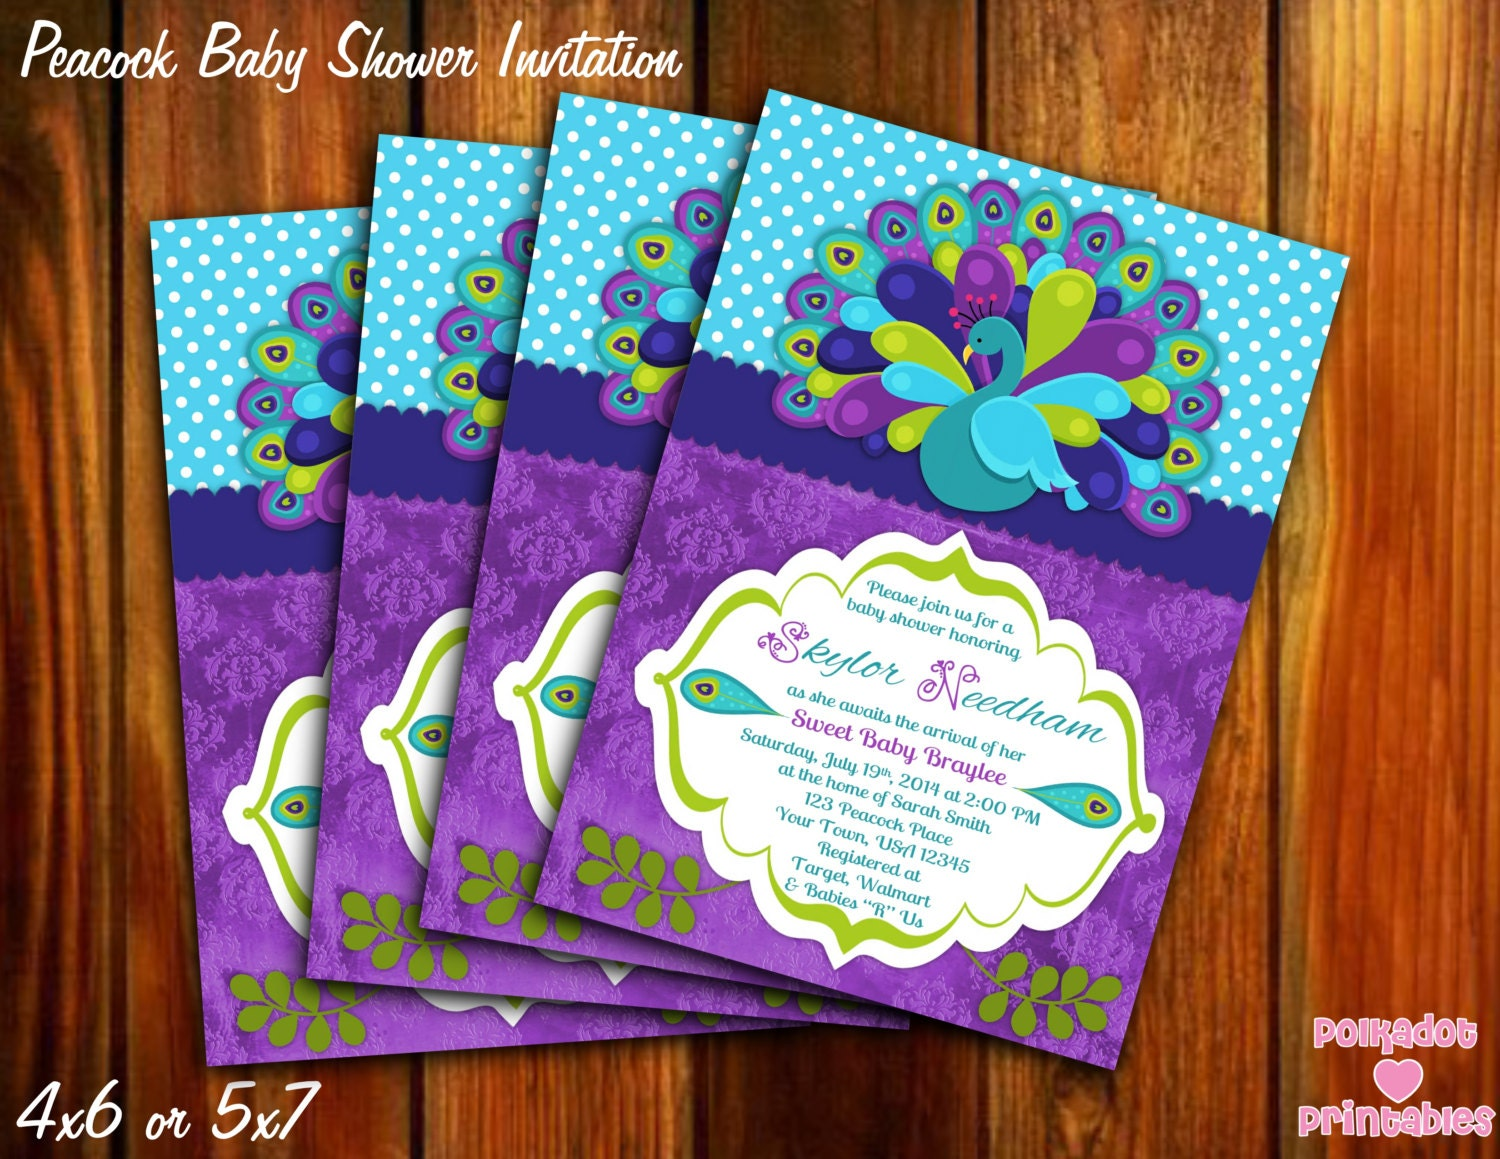 Peacock Baby Shower Invitation 4x6 Or 5x7 Printable